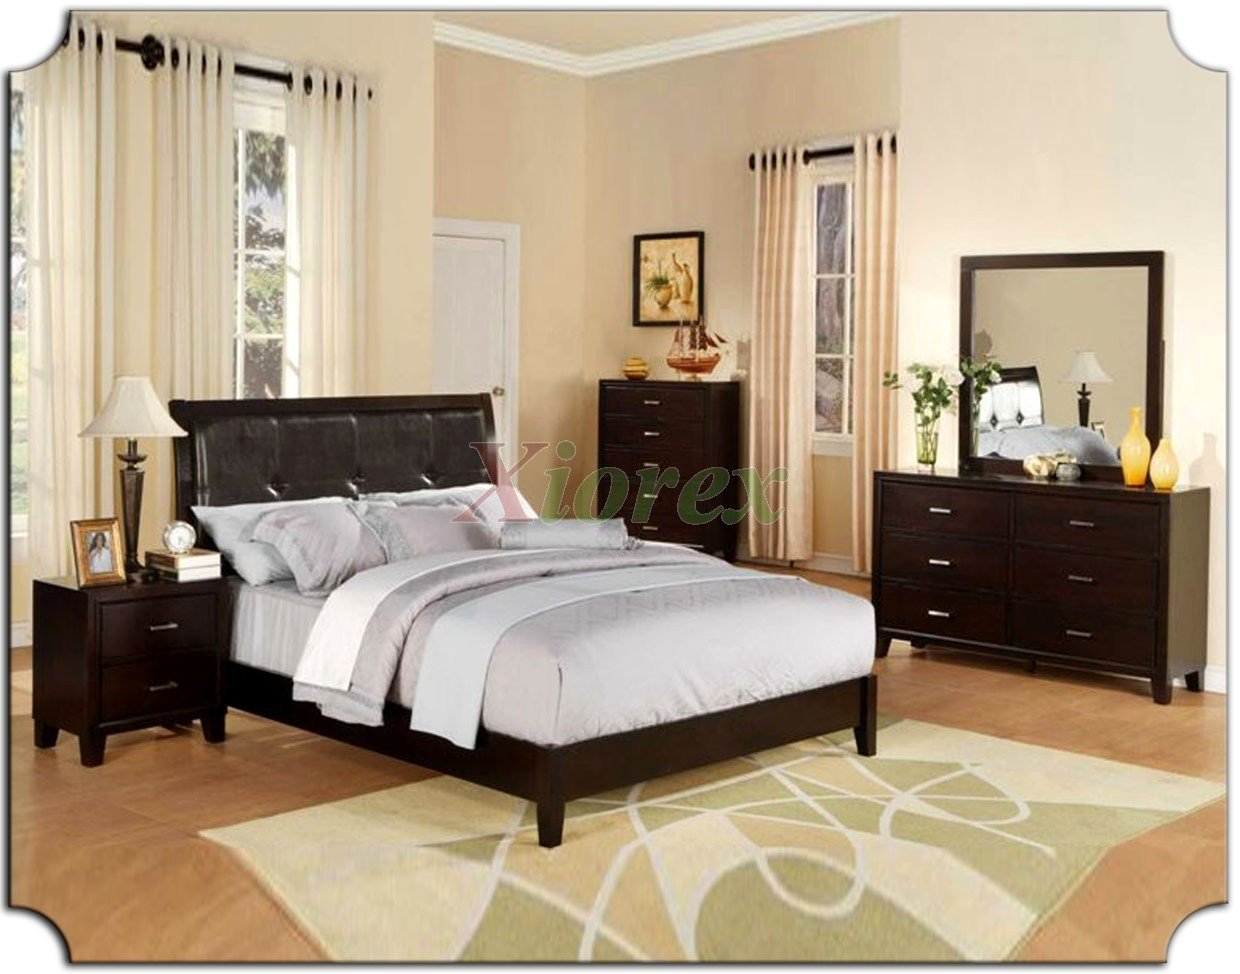 Best Platform Bedroom Furniture Set With Tufted Leather With Pictures